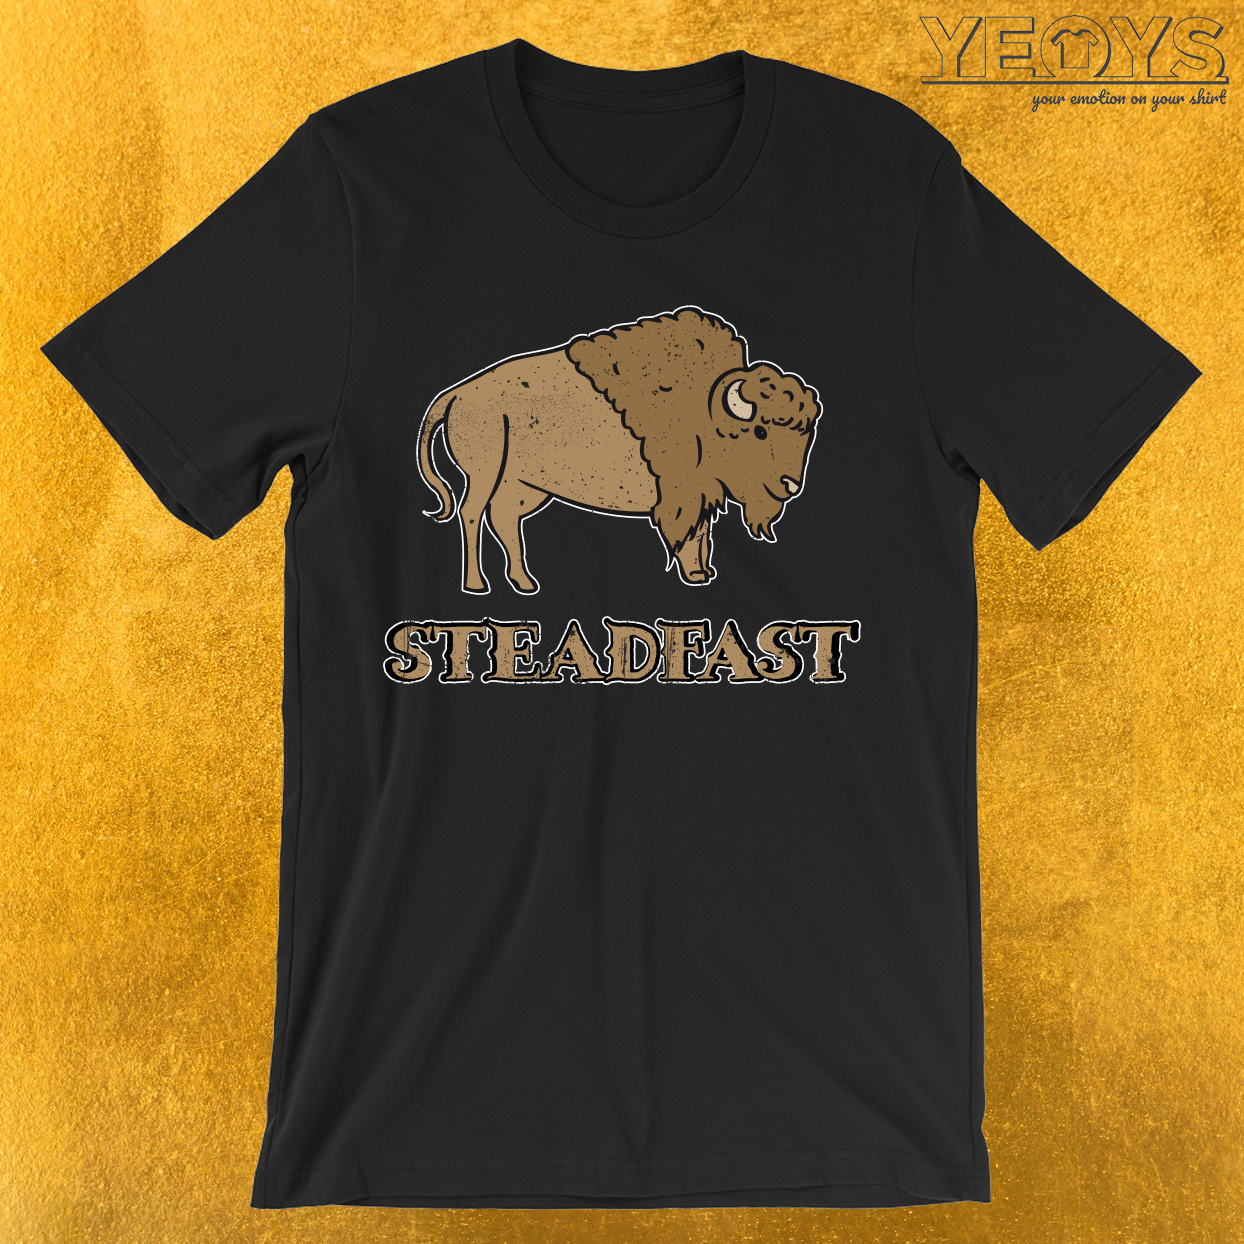 Steadfast Bison Buffalo T-Shirt